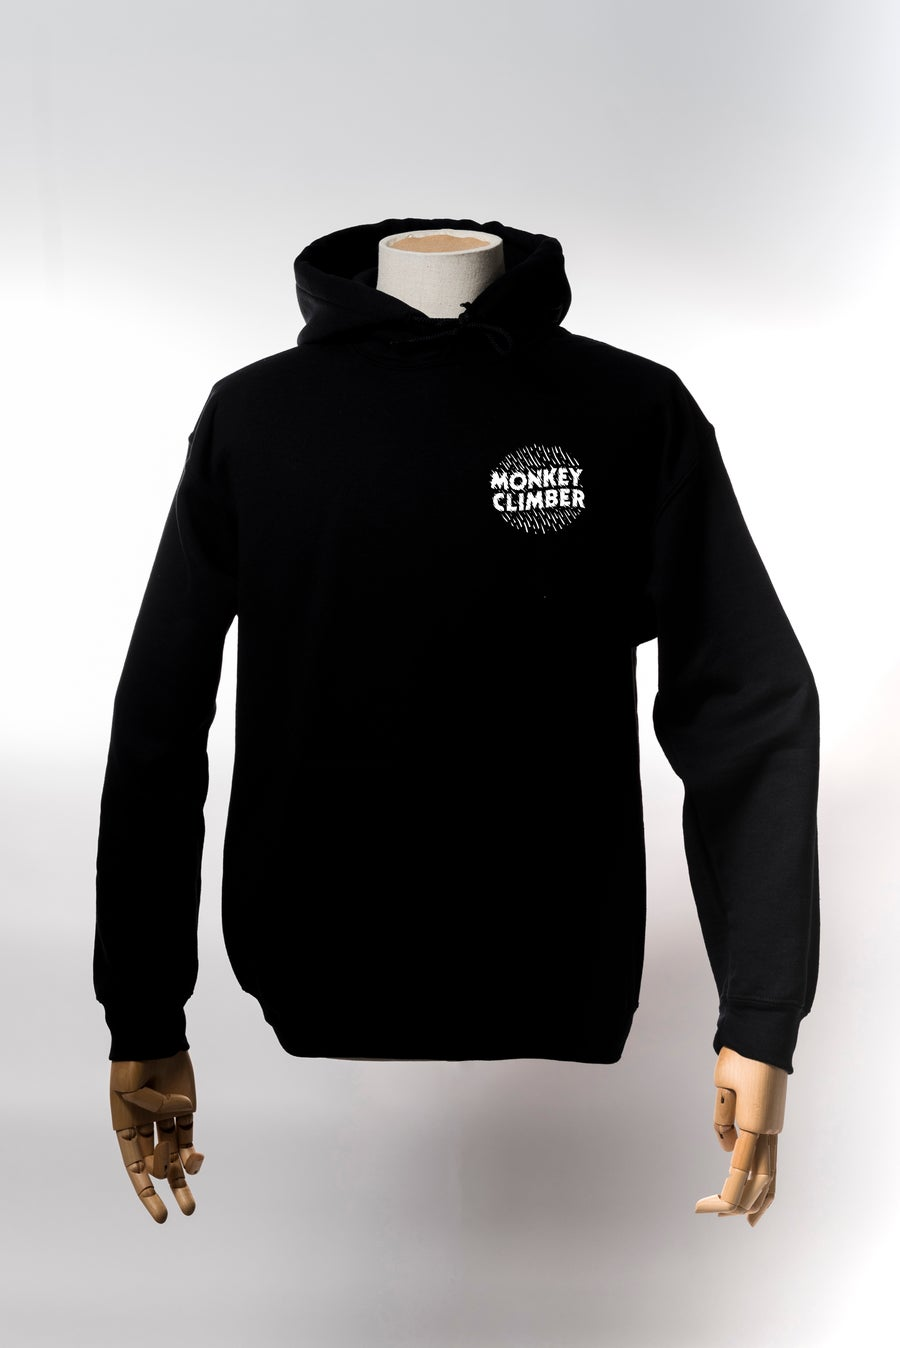 Image of Monkey Climber Ink hoodie I Black